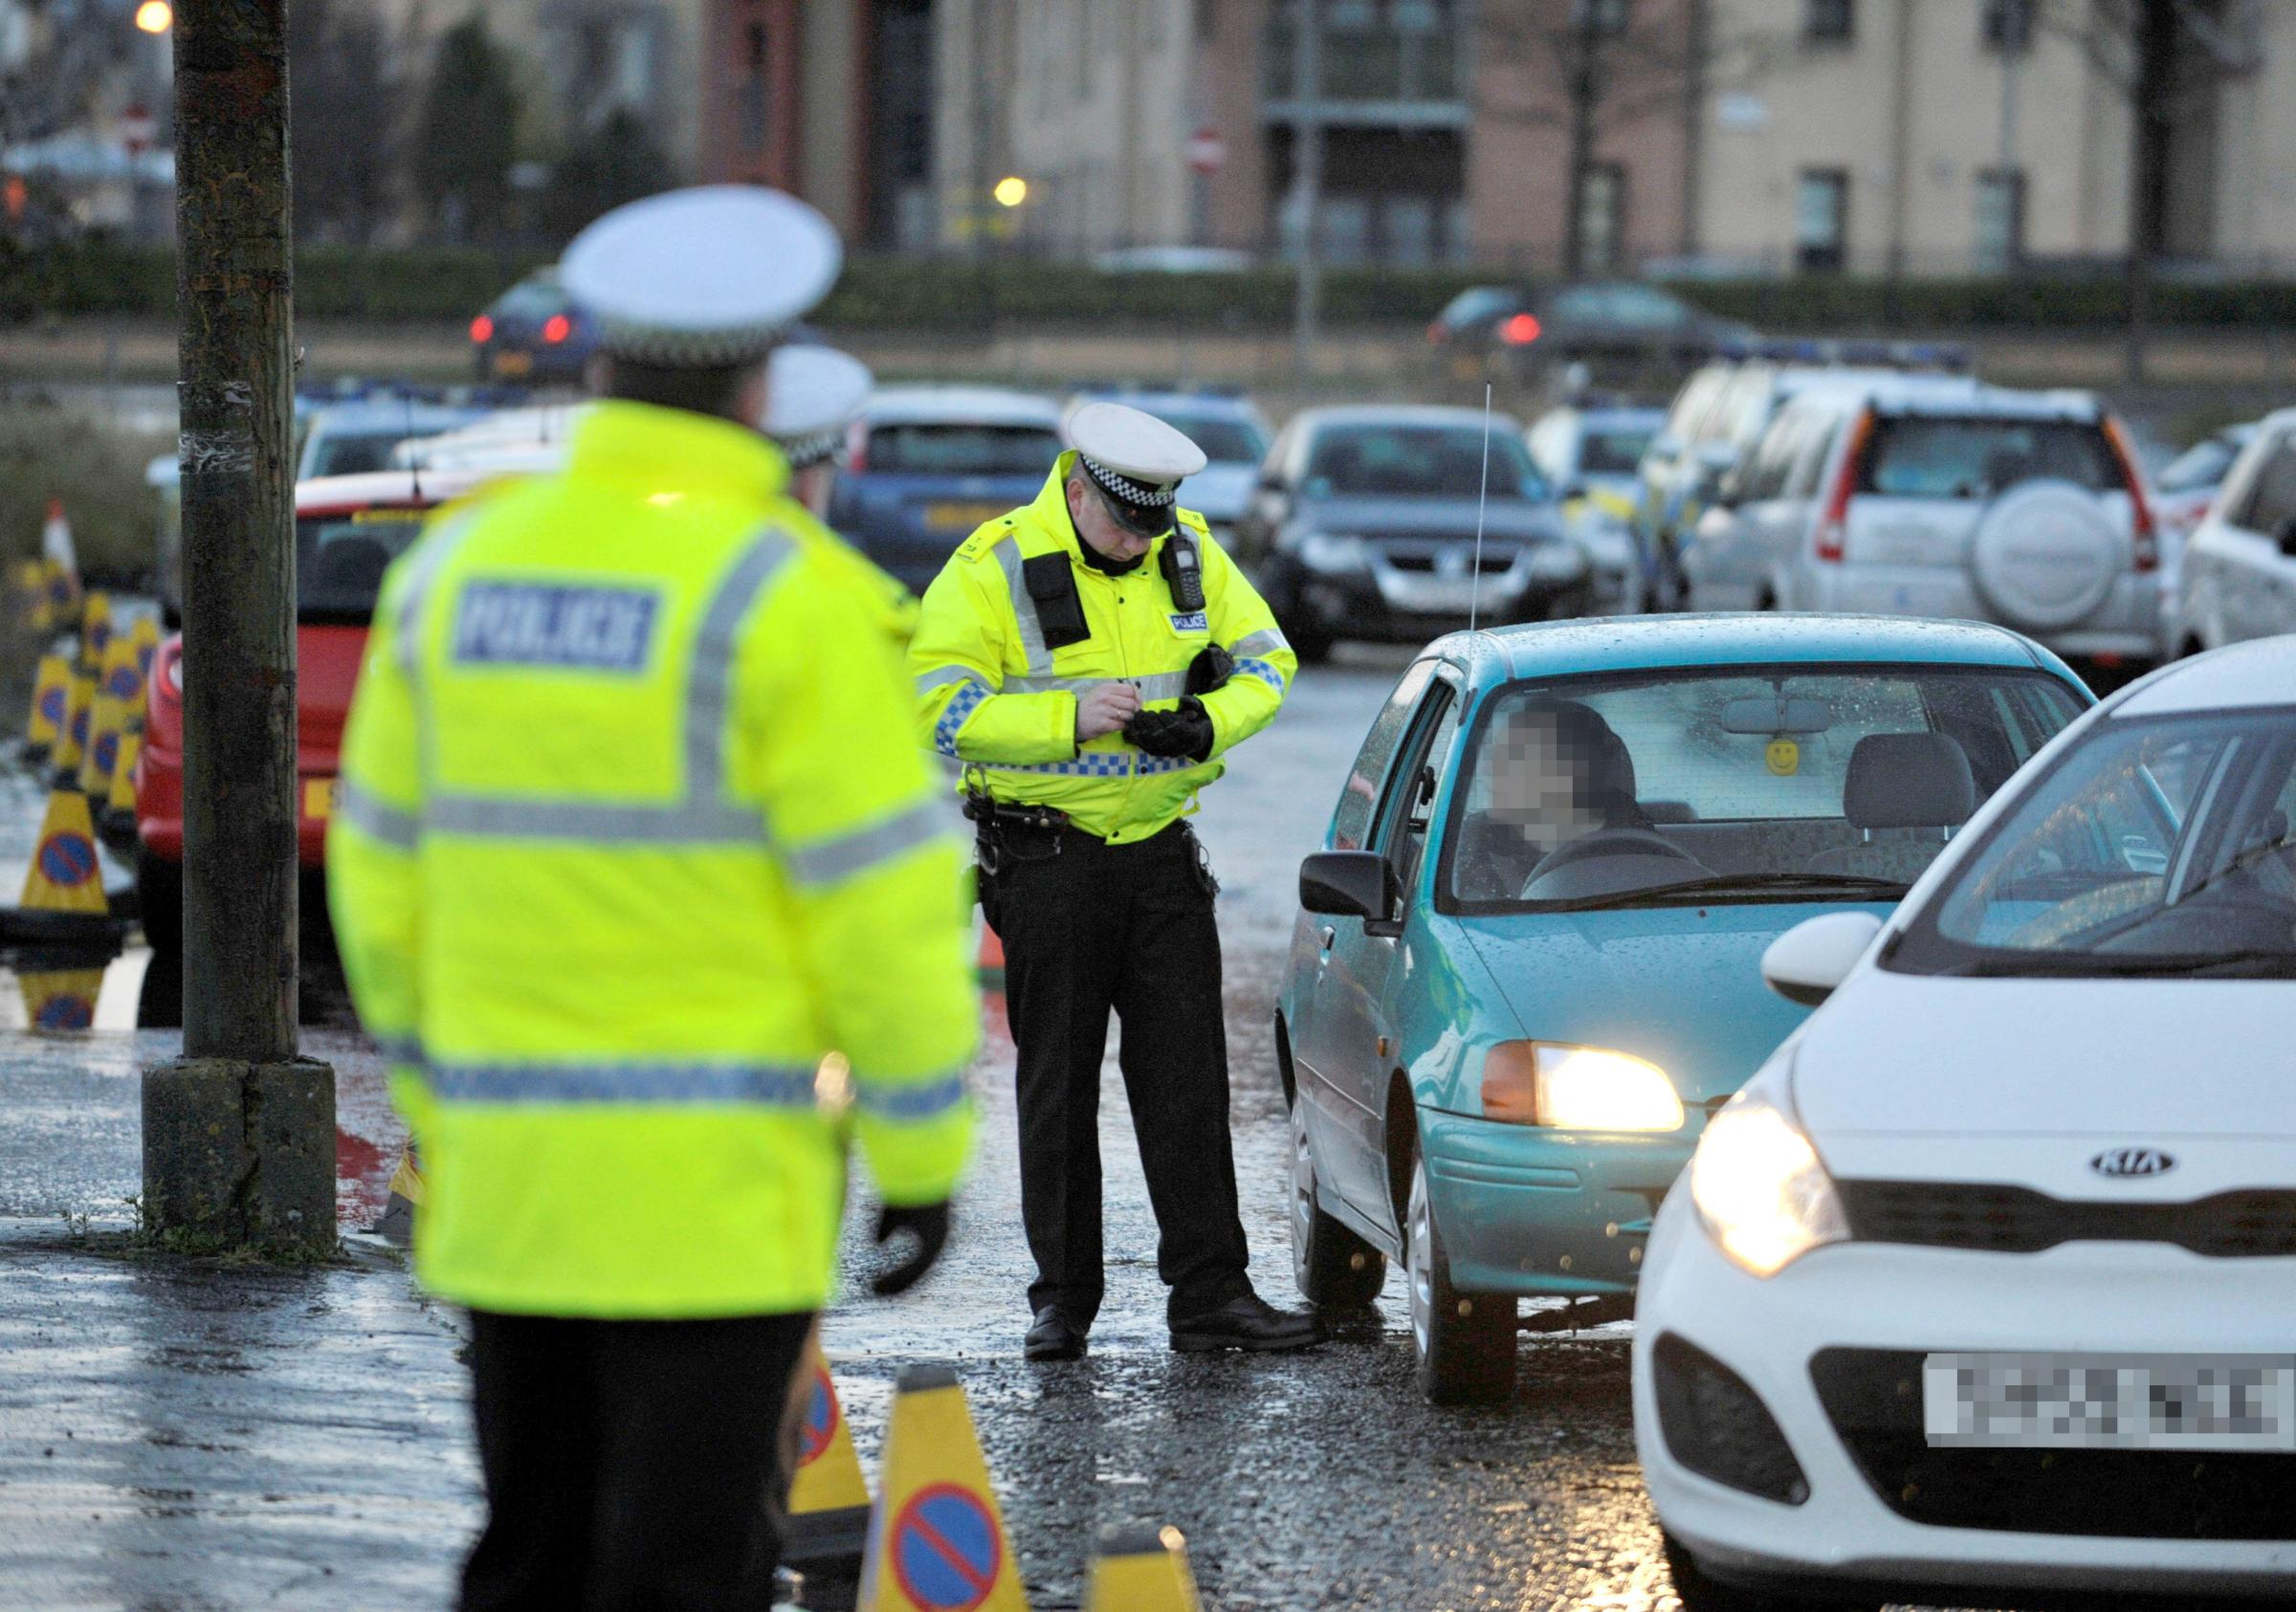 Revealed: Glasgow worst for uninsured drivers as cops launch crackdown